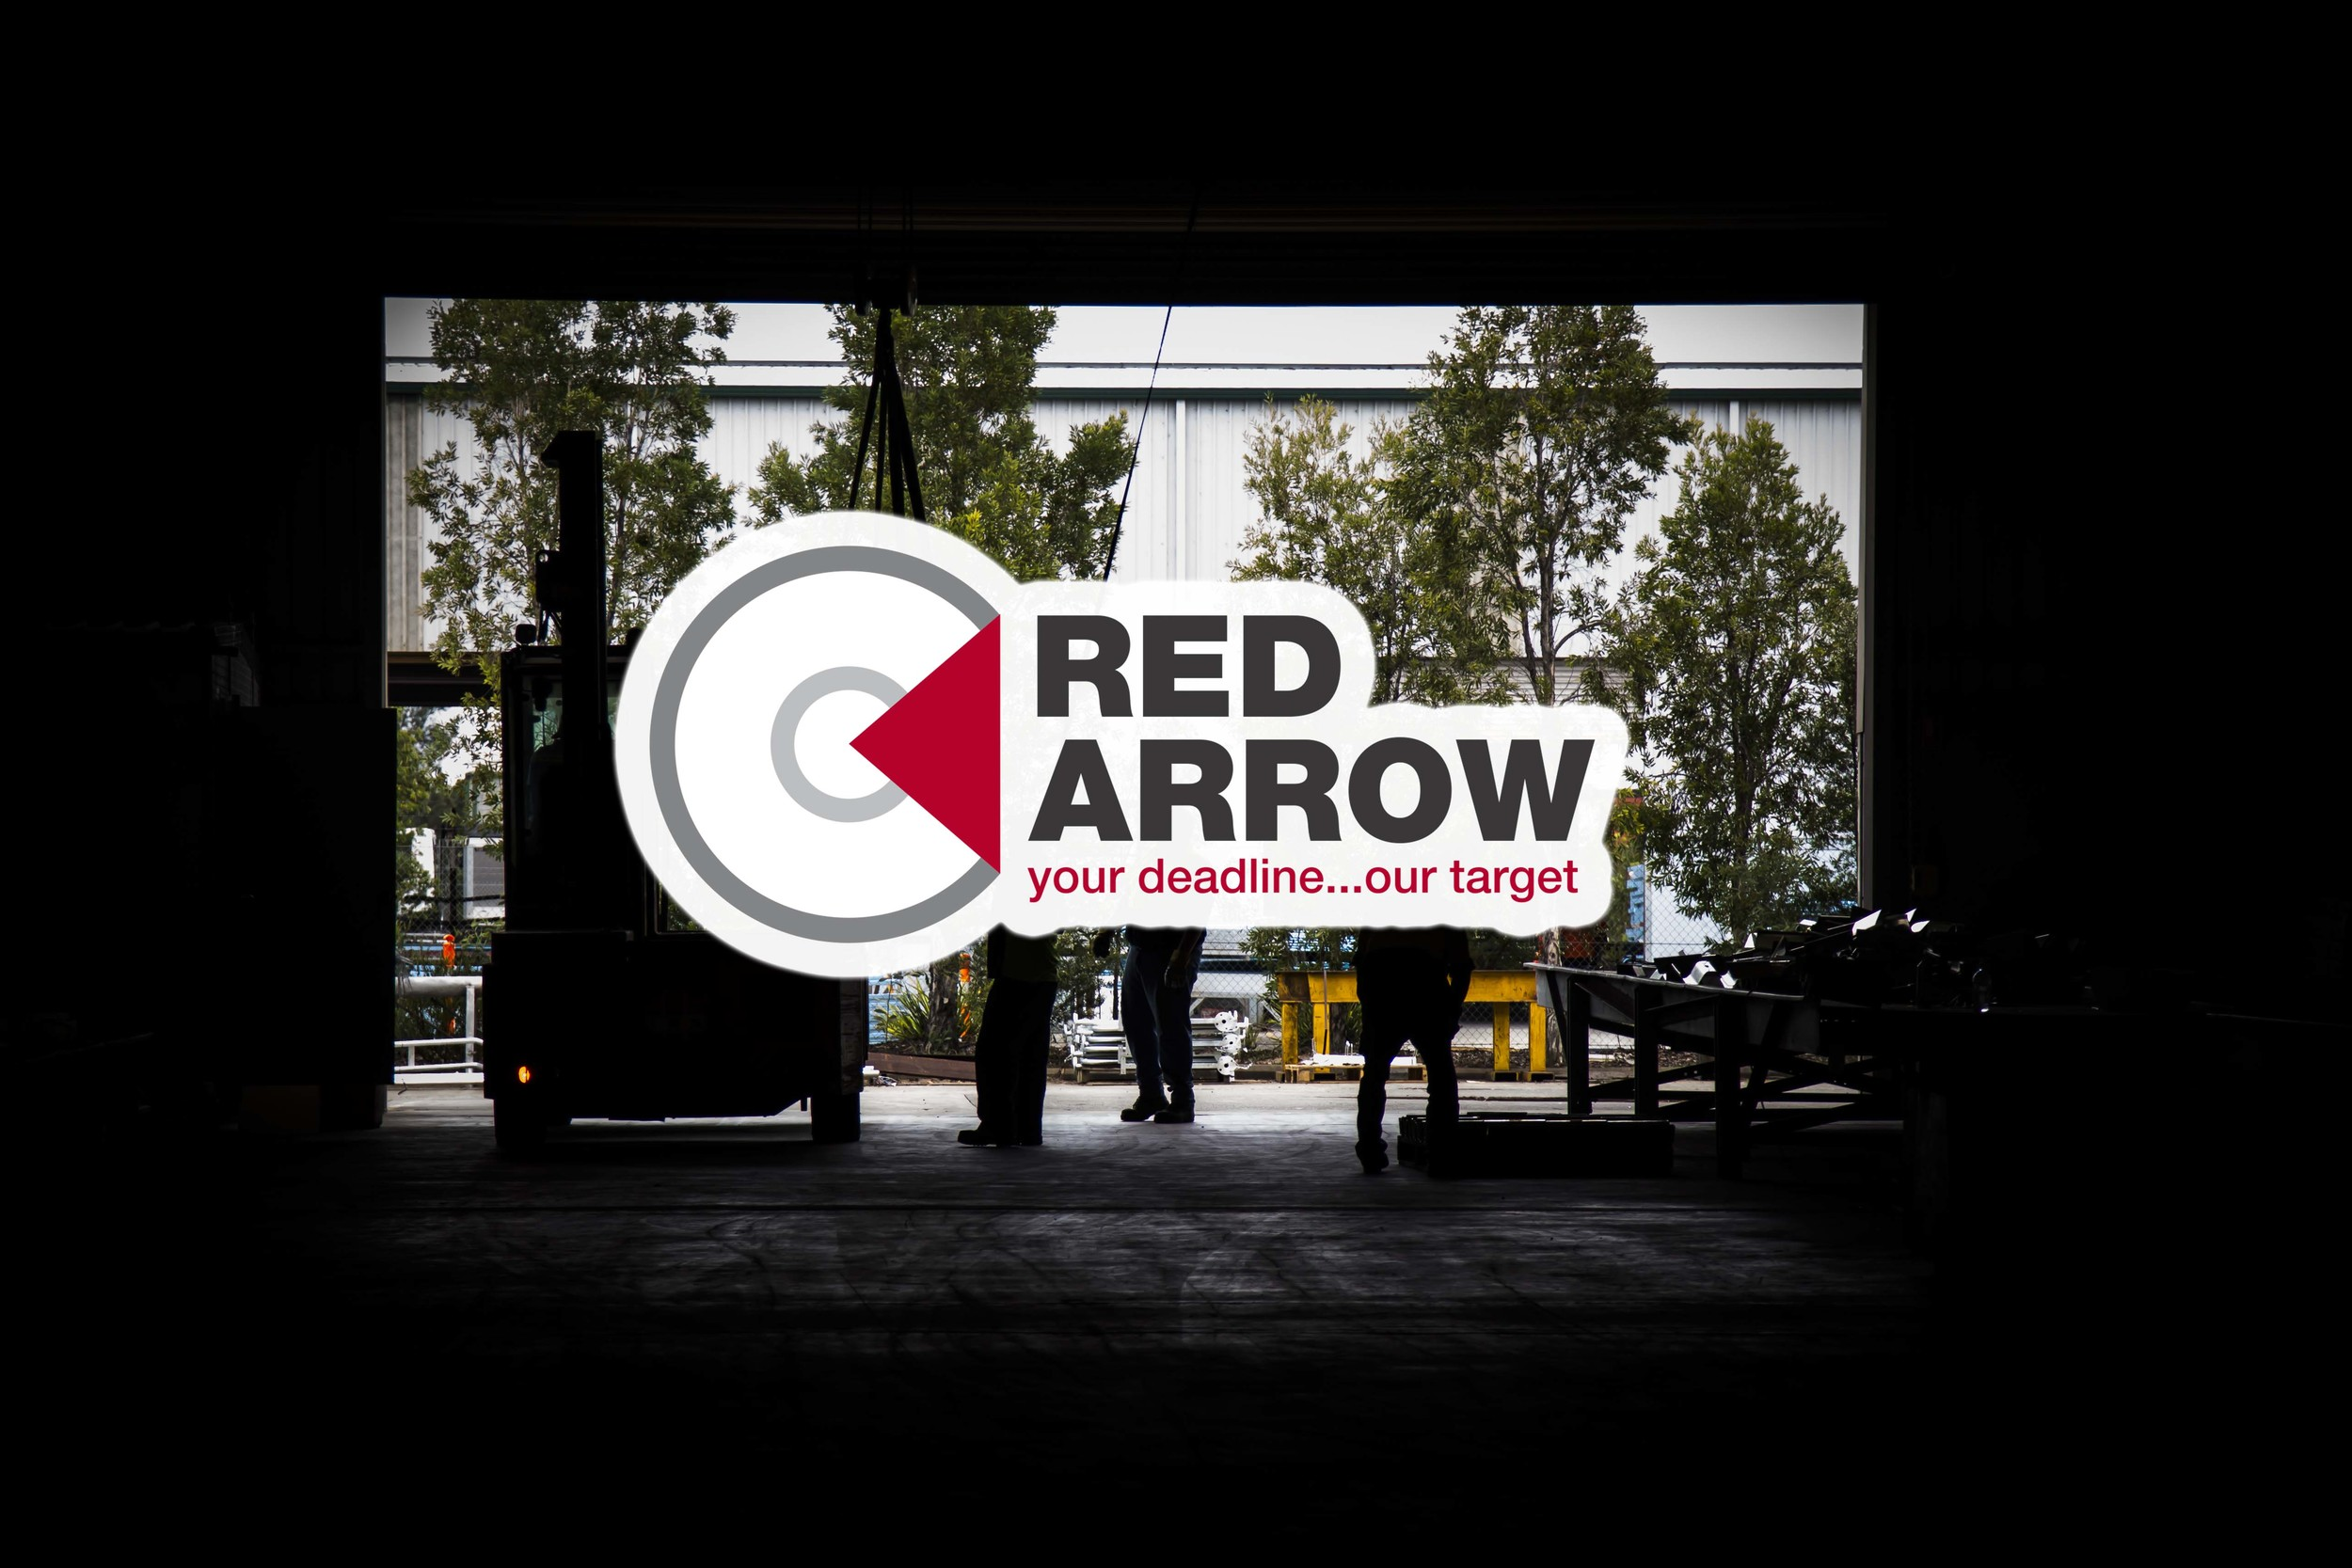 Red Arrow - Your deadline...our target